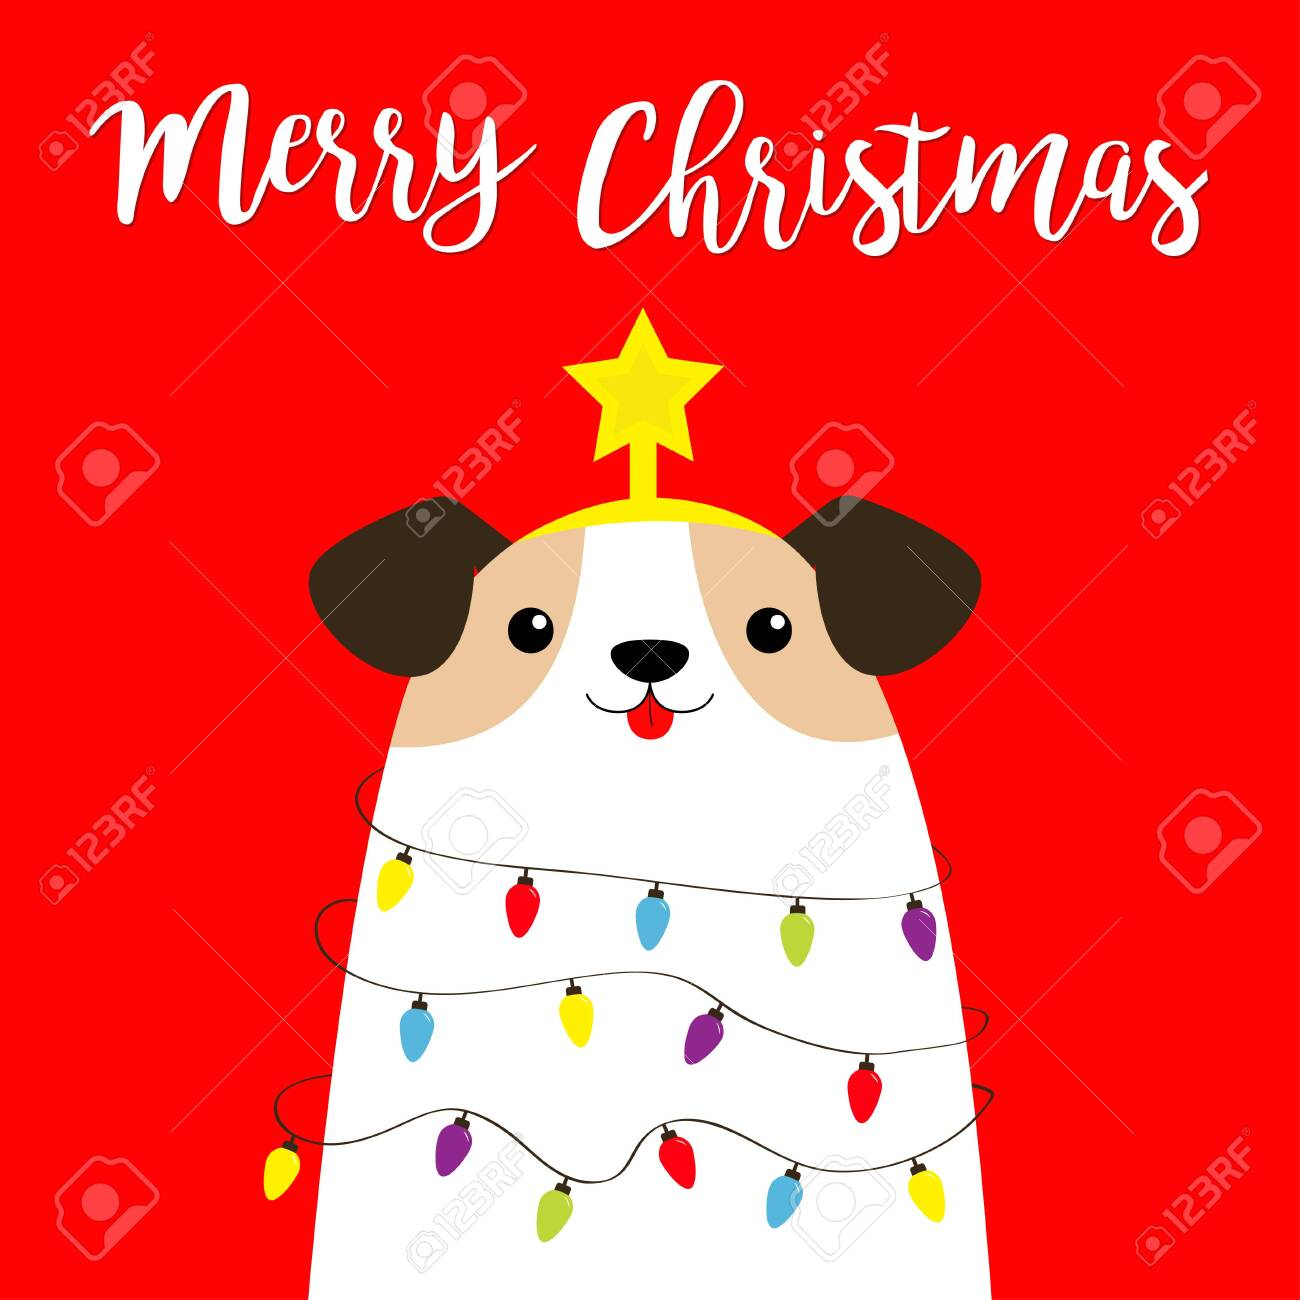 Merry Christmas Dog Fir Tree Shape Garland Lights Bulb String Royalty Free Cliparts Vectors And Stock Illustration Image 132686085